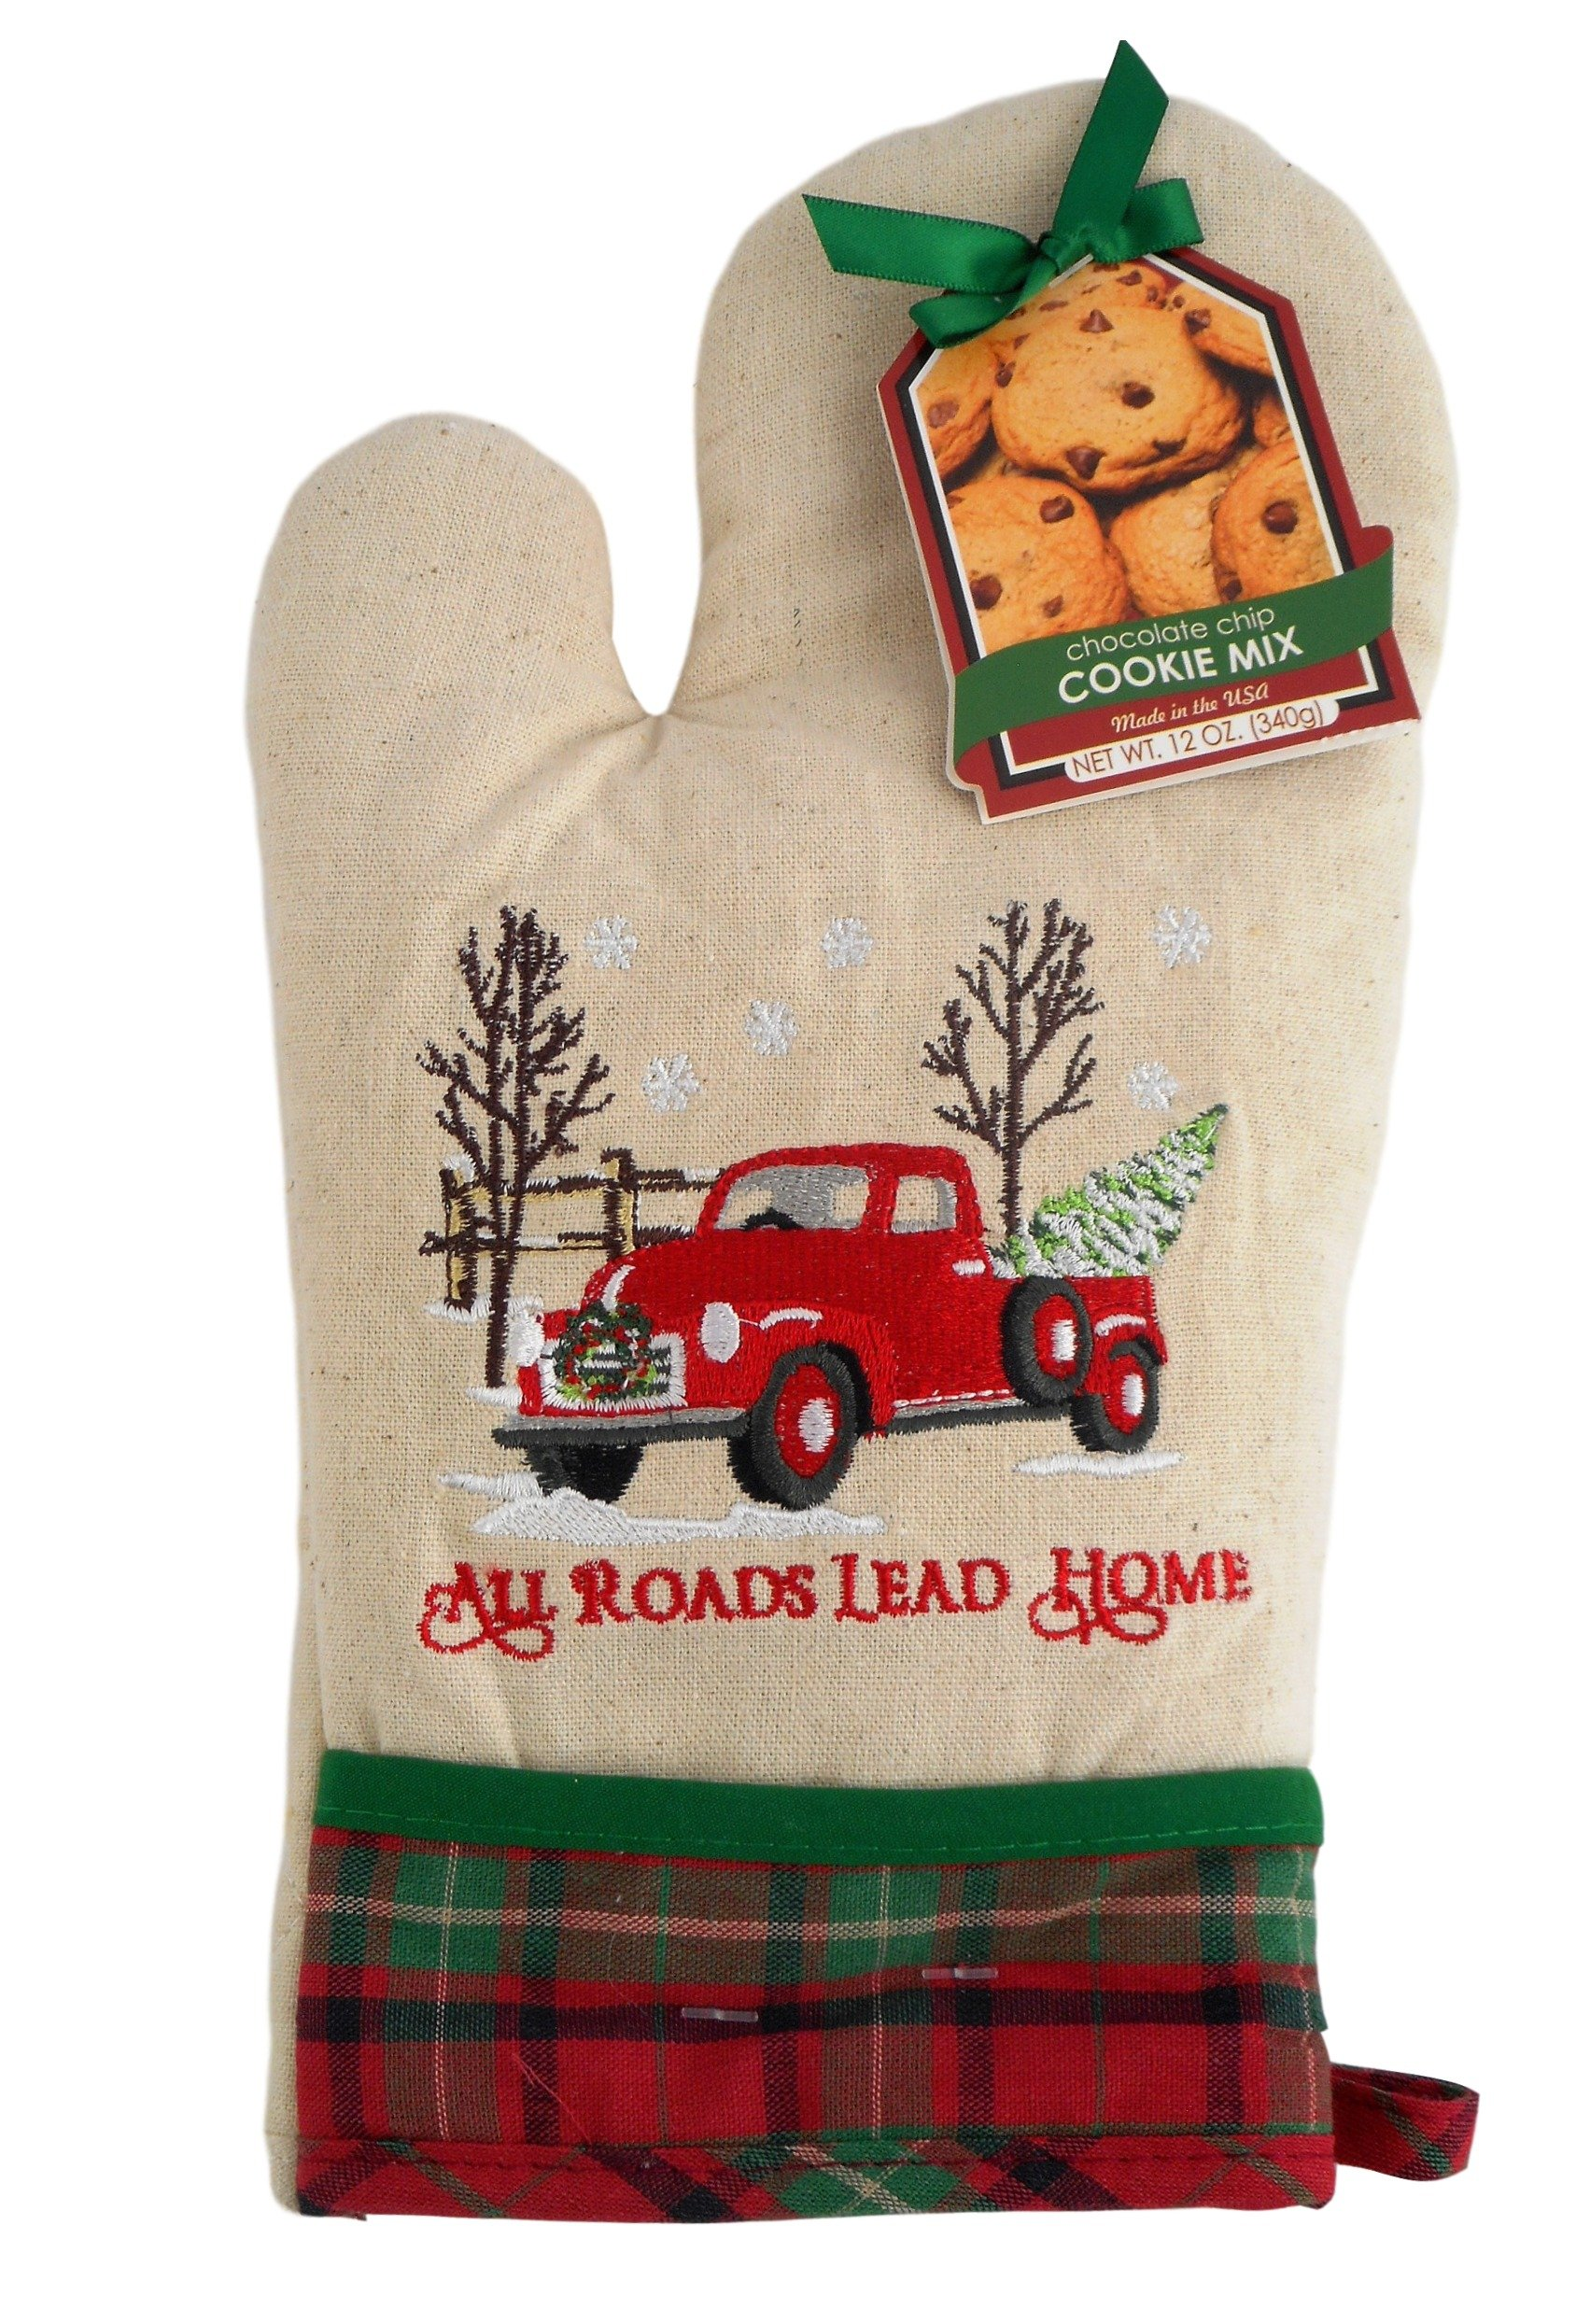 Holiday Baking Pot All Roads Lead Home Oven Mitt Cookie Mix Set